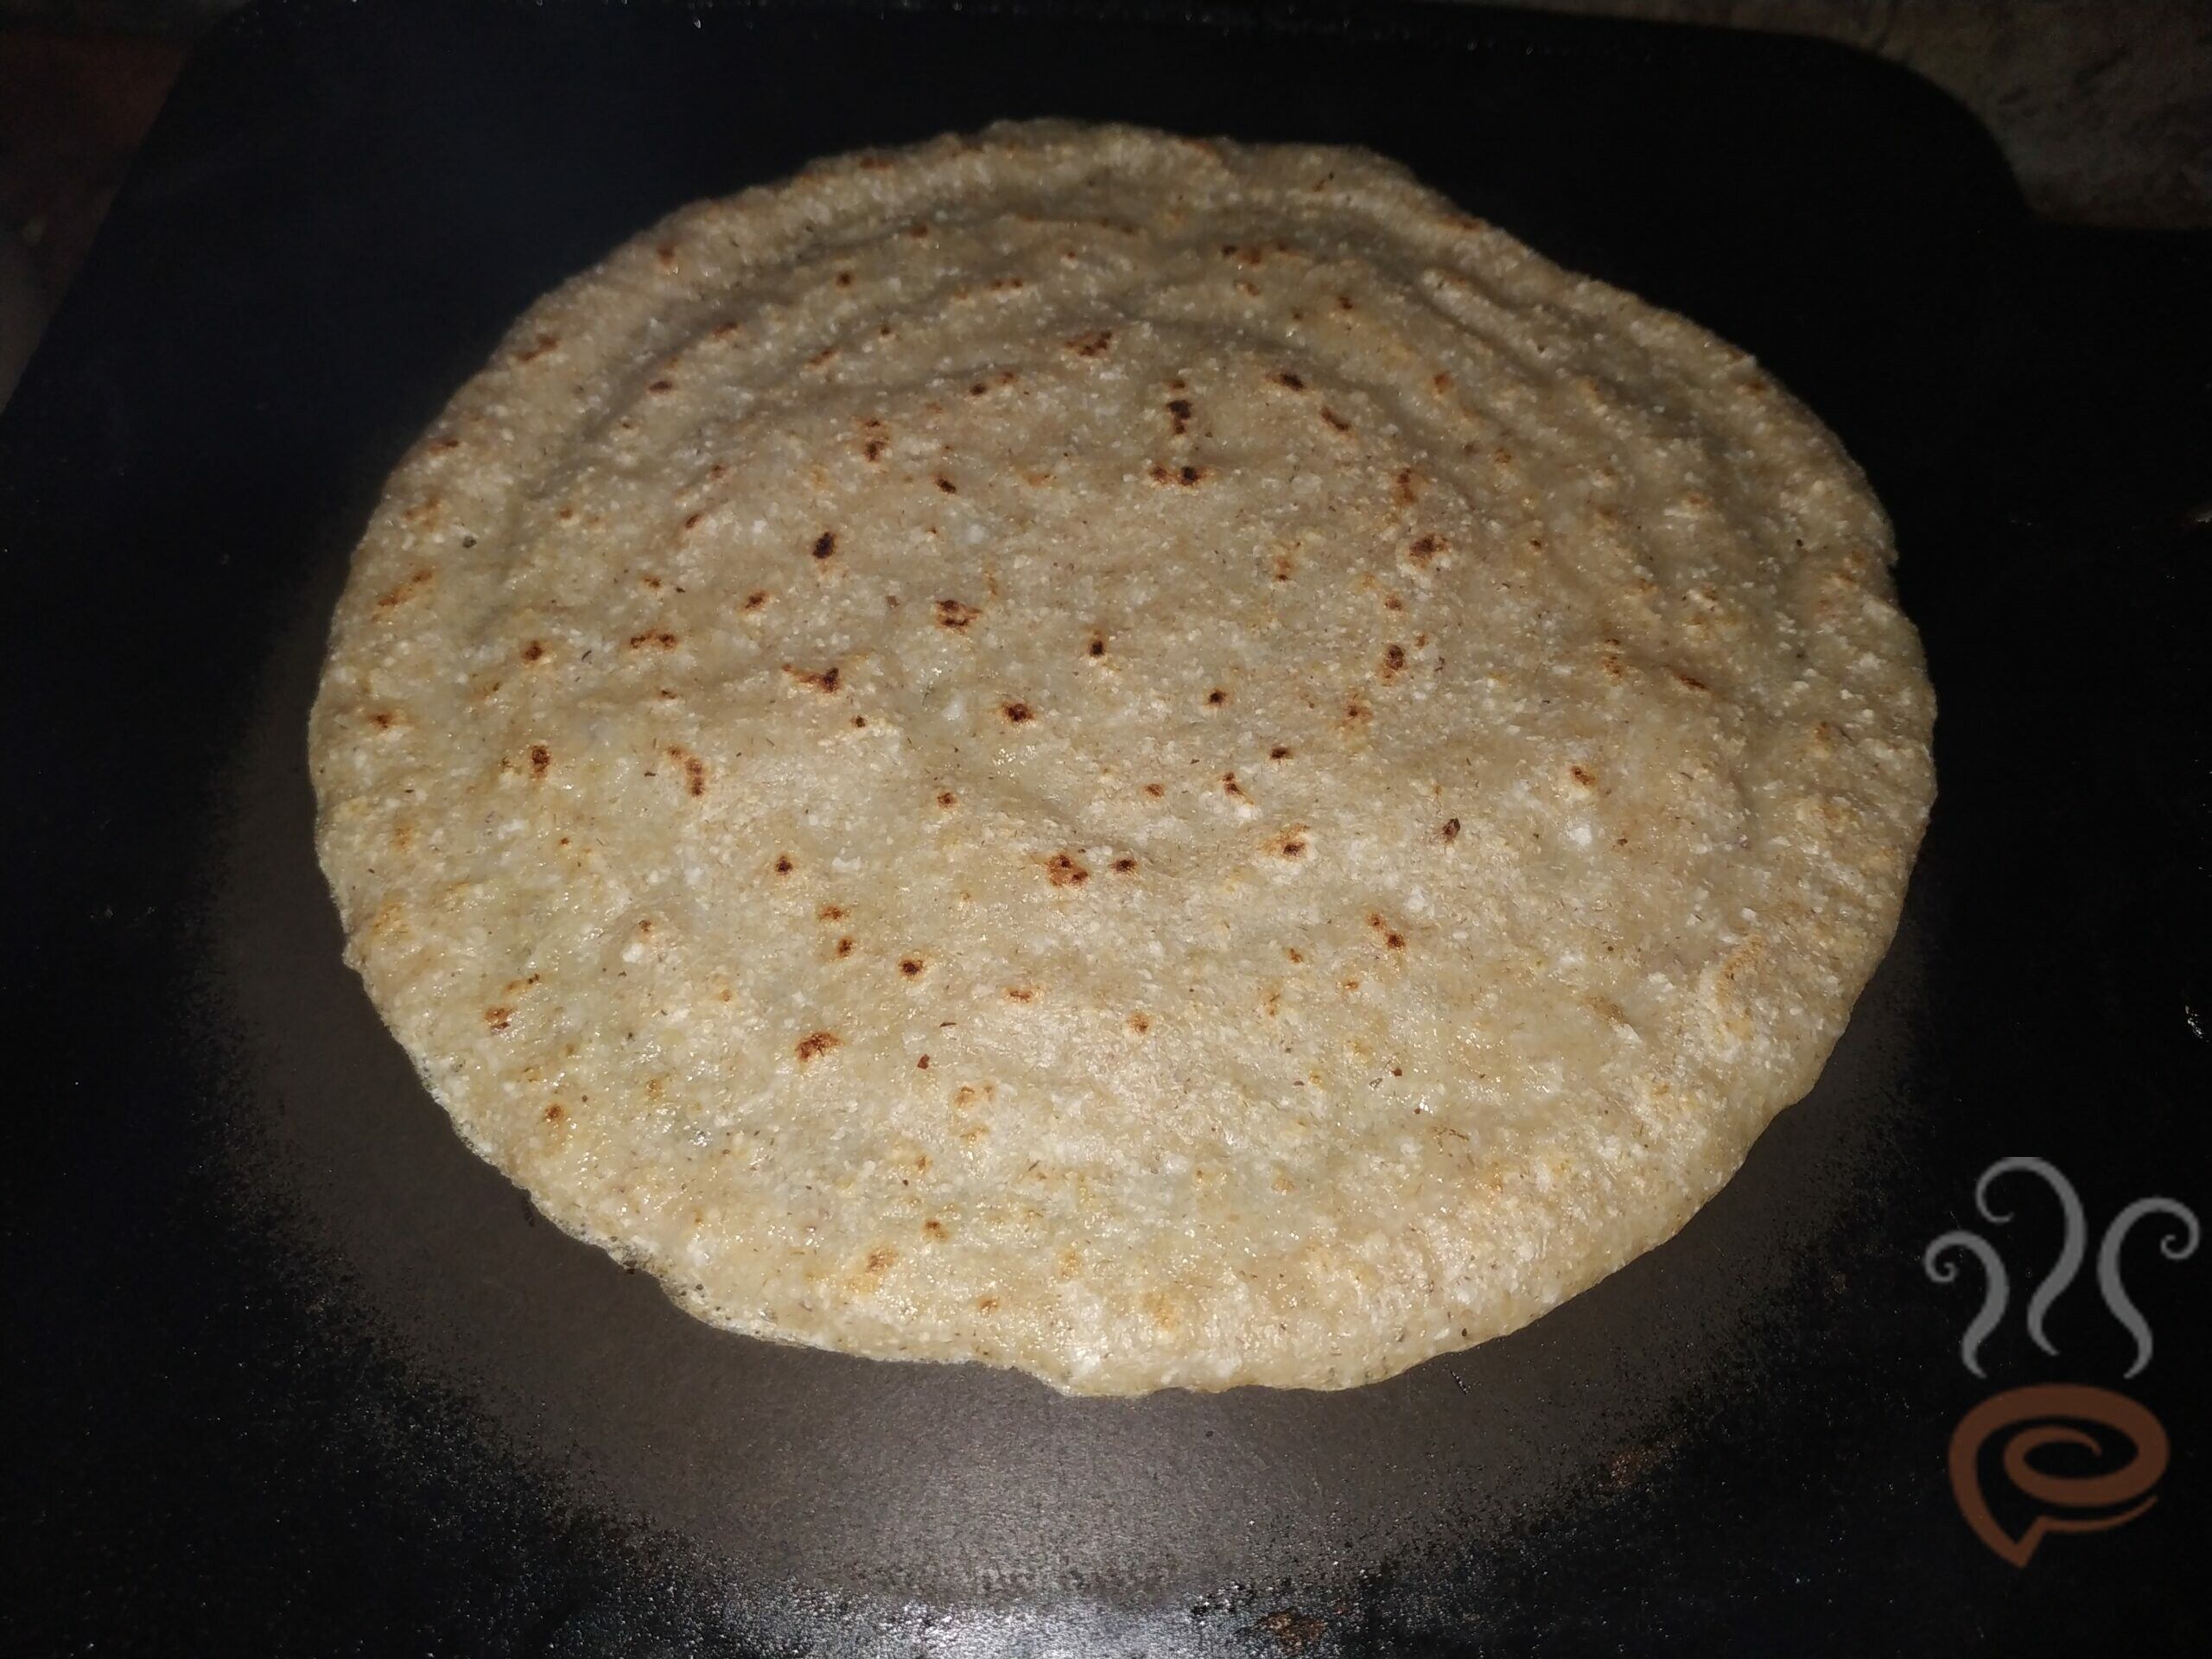 Broken Wheat Dosa | Healthy Breakfast Dosa – pachakam.com